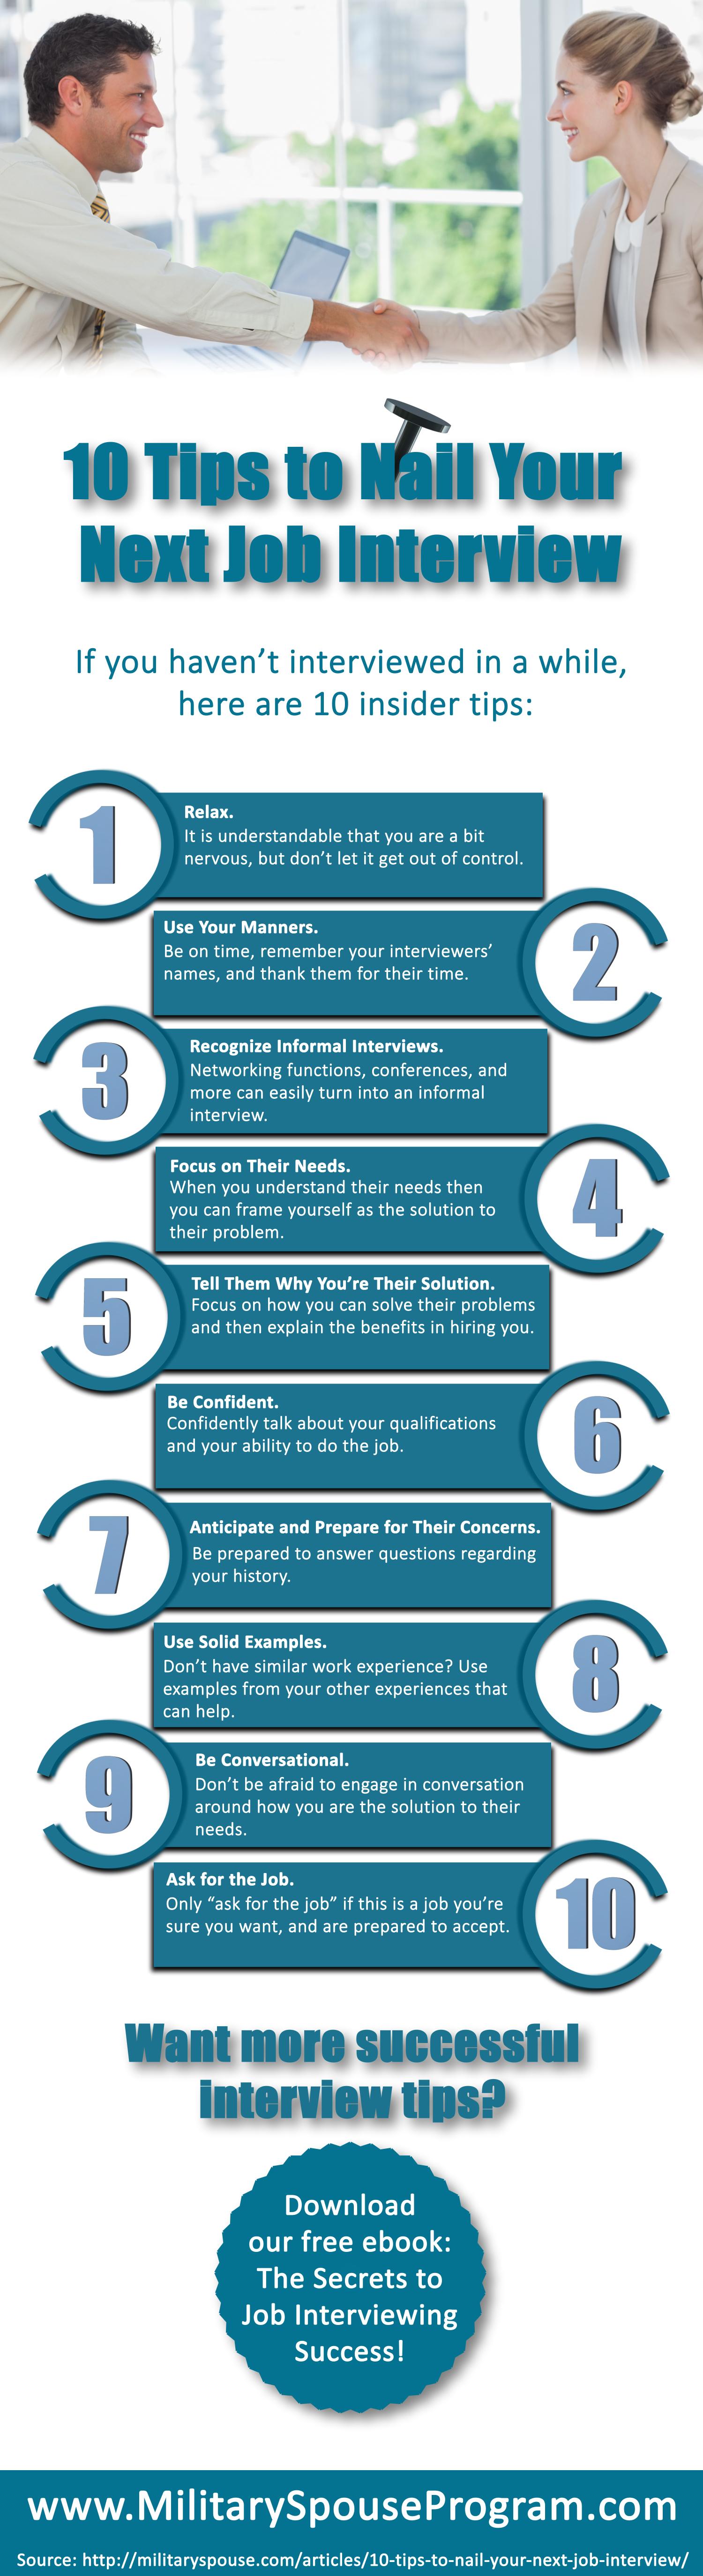 tips to nail your next job interview ly